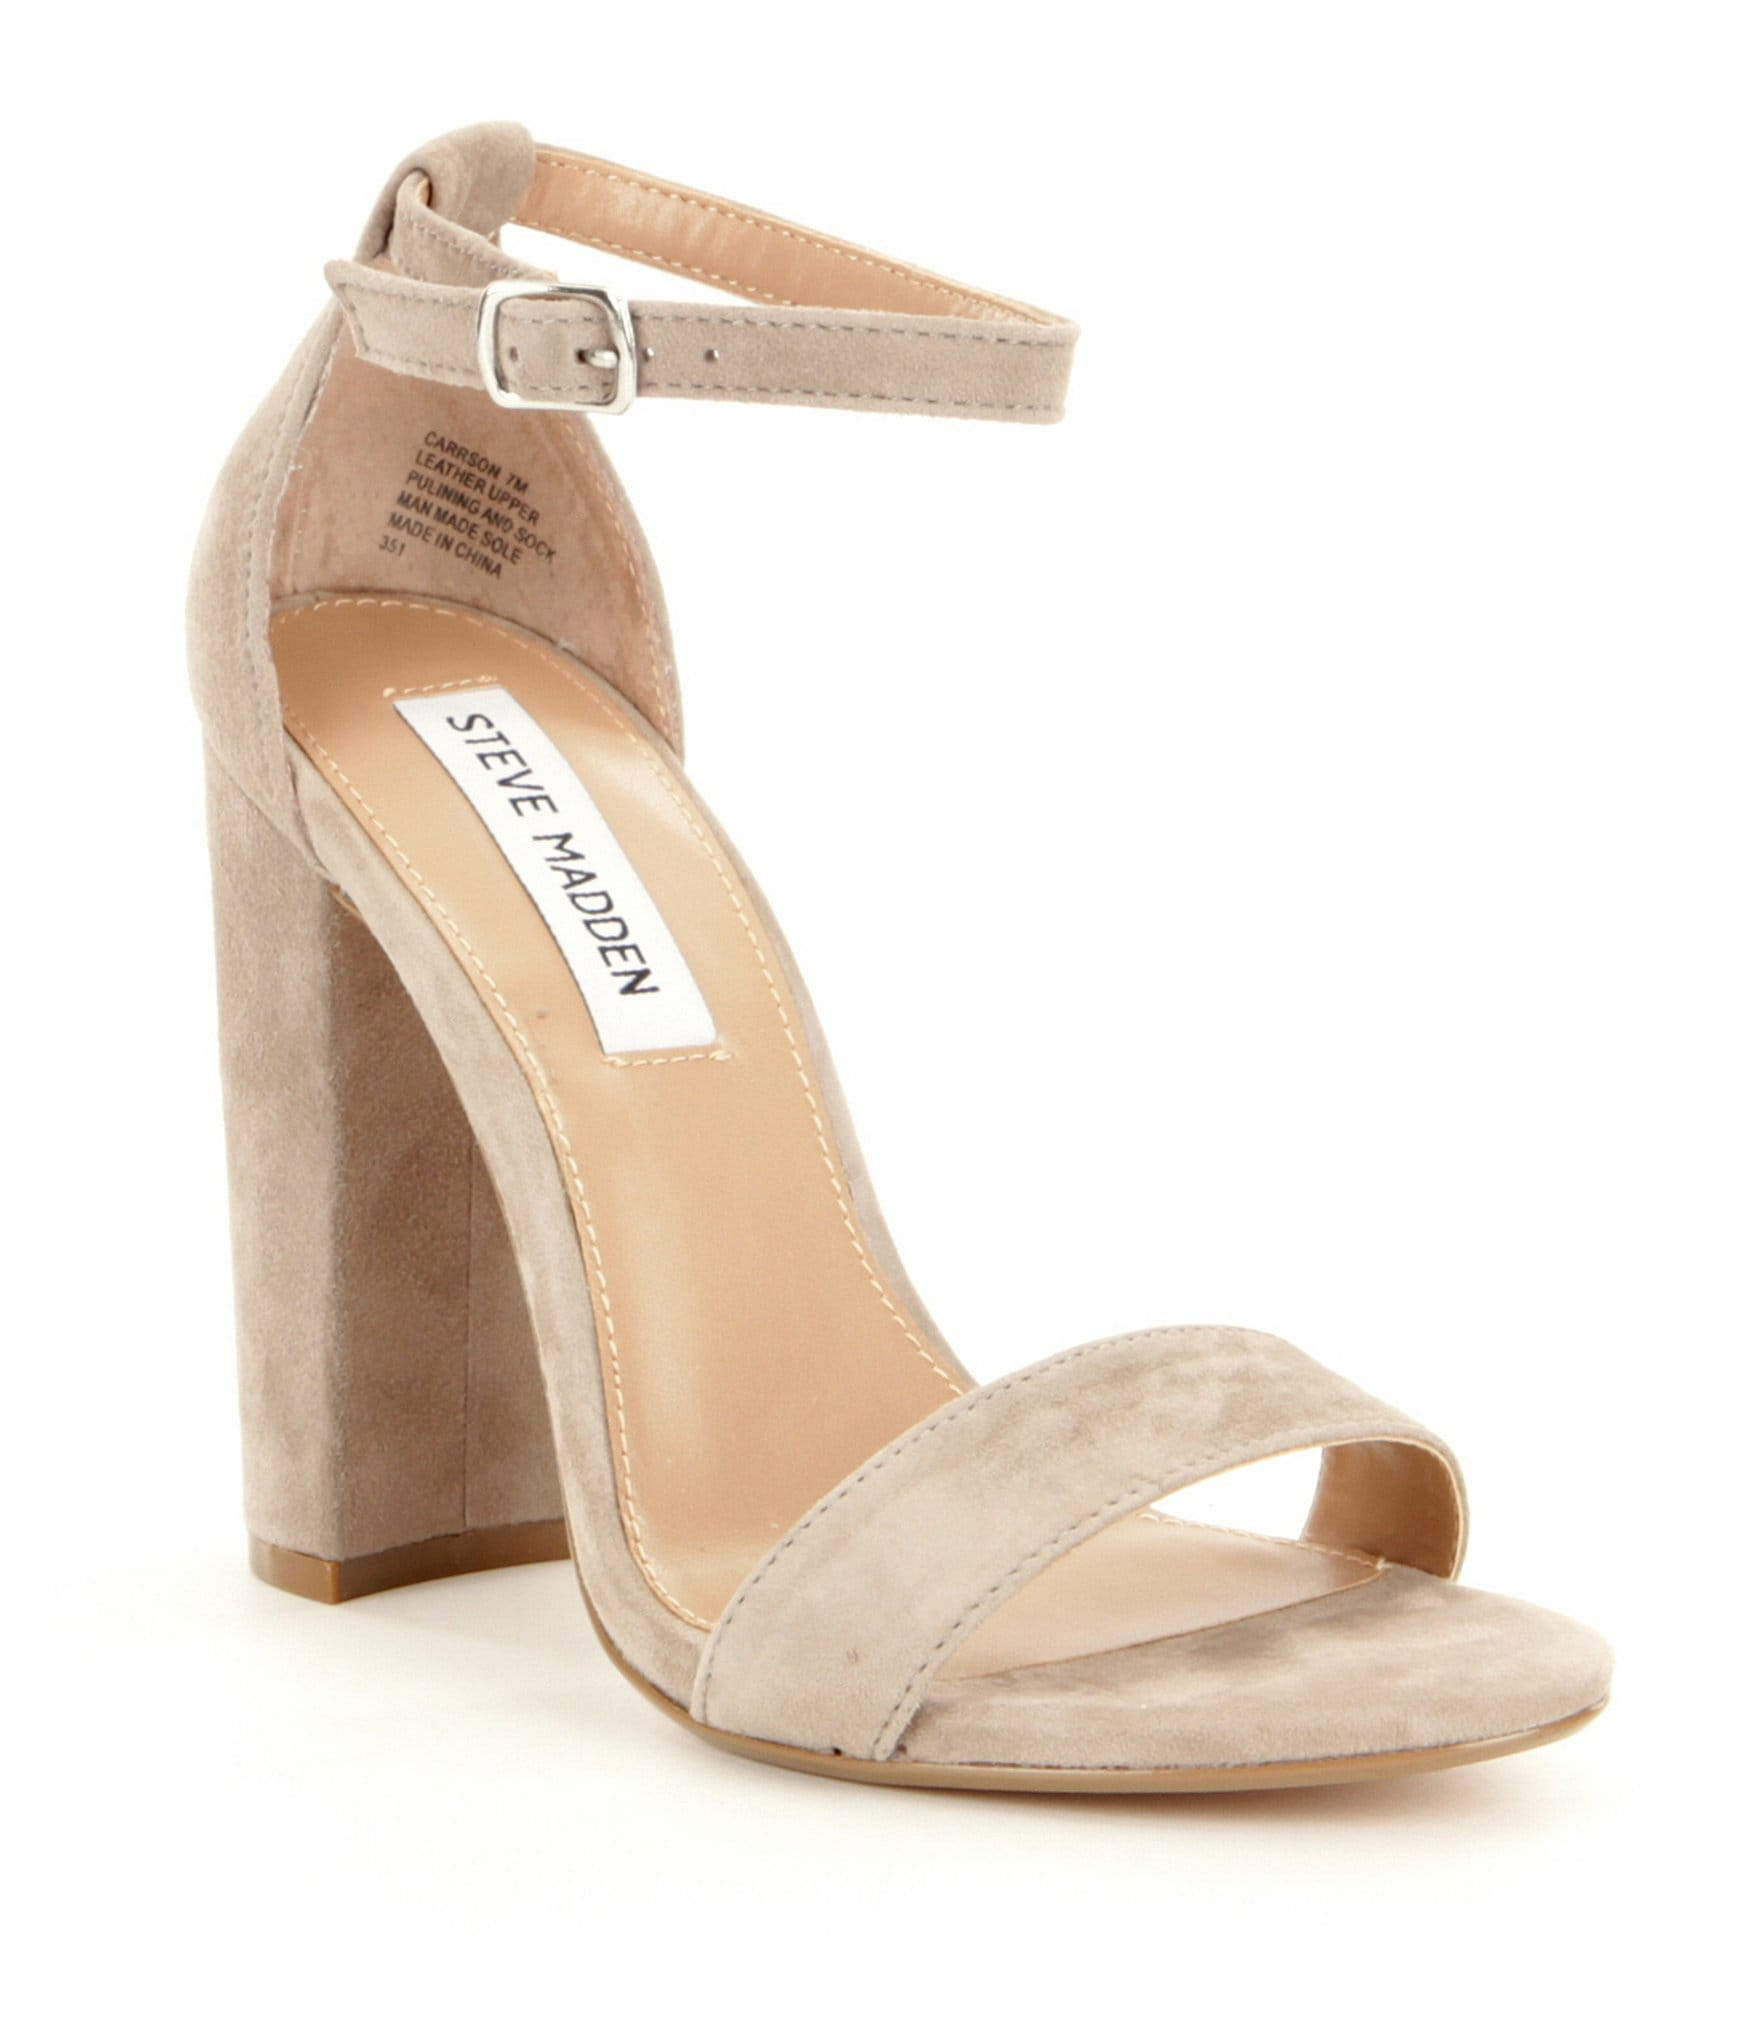 Steve Madden Carrson Suede Ankle Strap Block Heel Dress